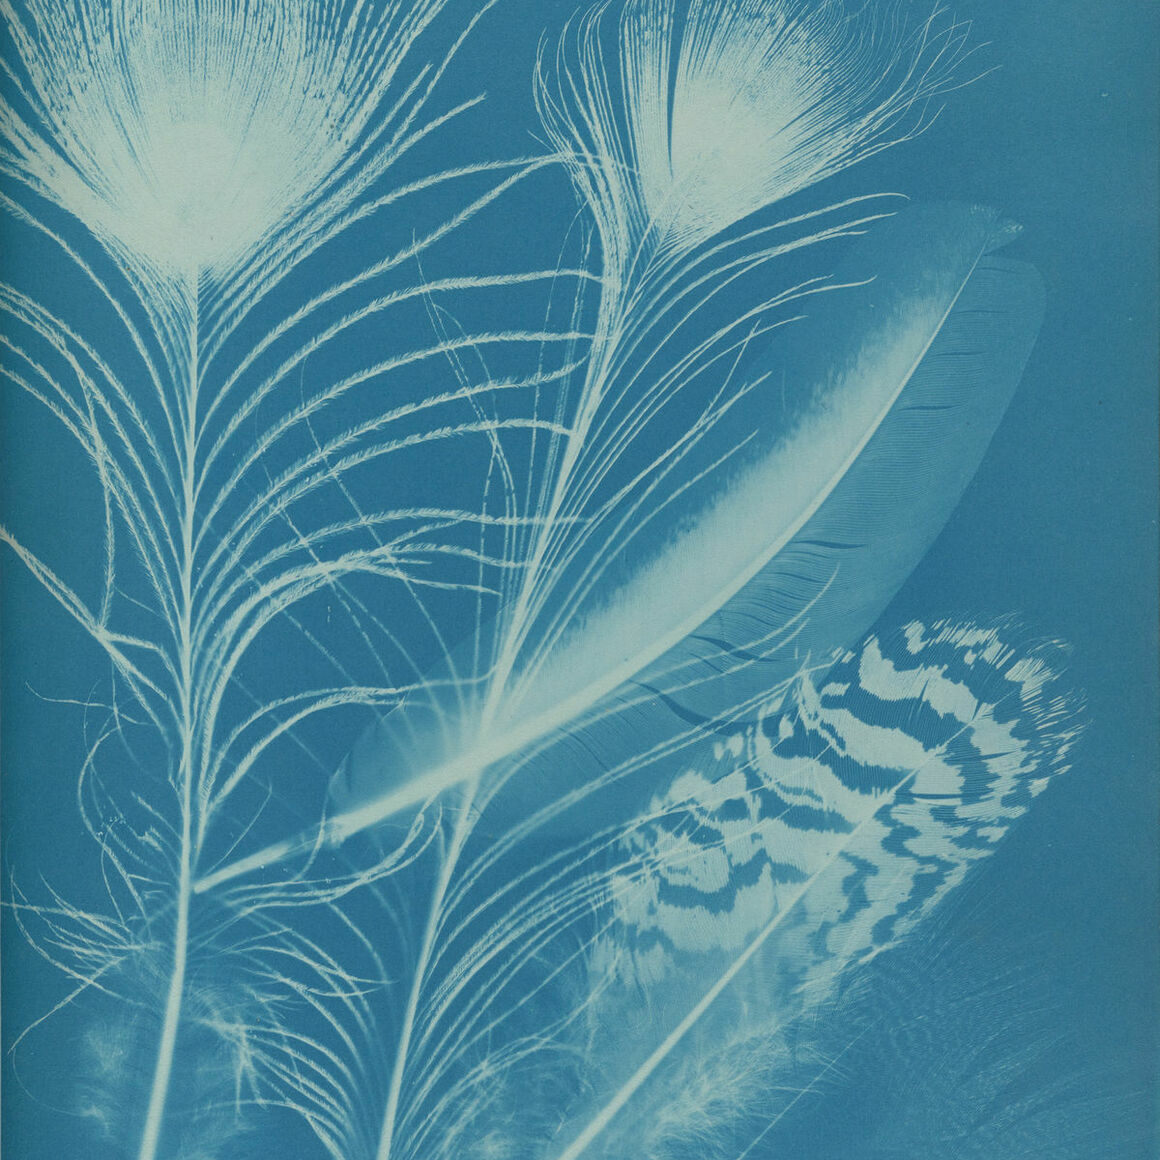 Anna Atkins and Anne Dixon, Peacock, 1861